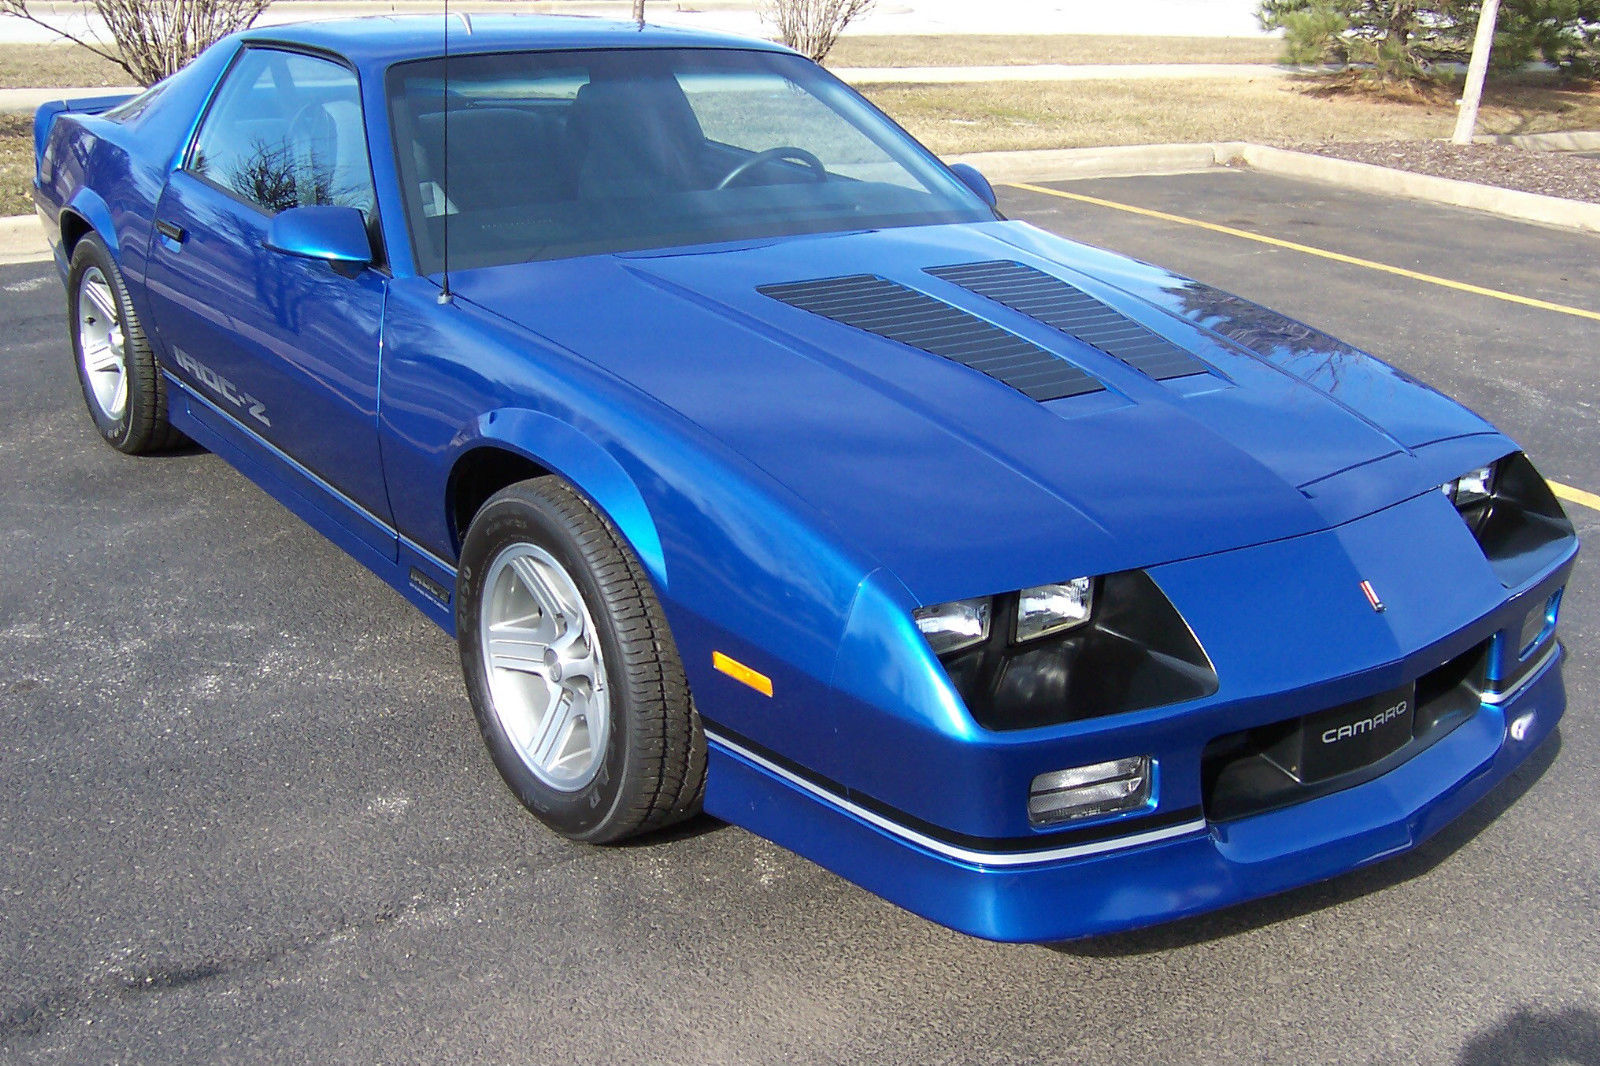 1990 chevrolet camaro iroc 1le 5 7l 350ci 1 of 28 built only 2k original miles classic. Black Bedroom Furniture Sets. Home Design Ideas